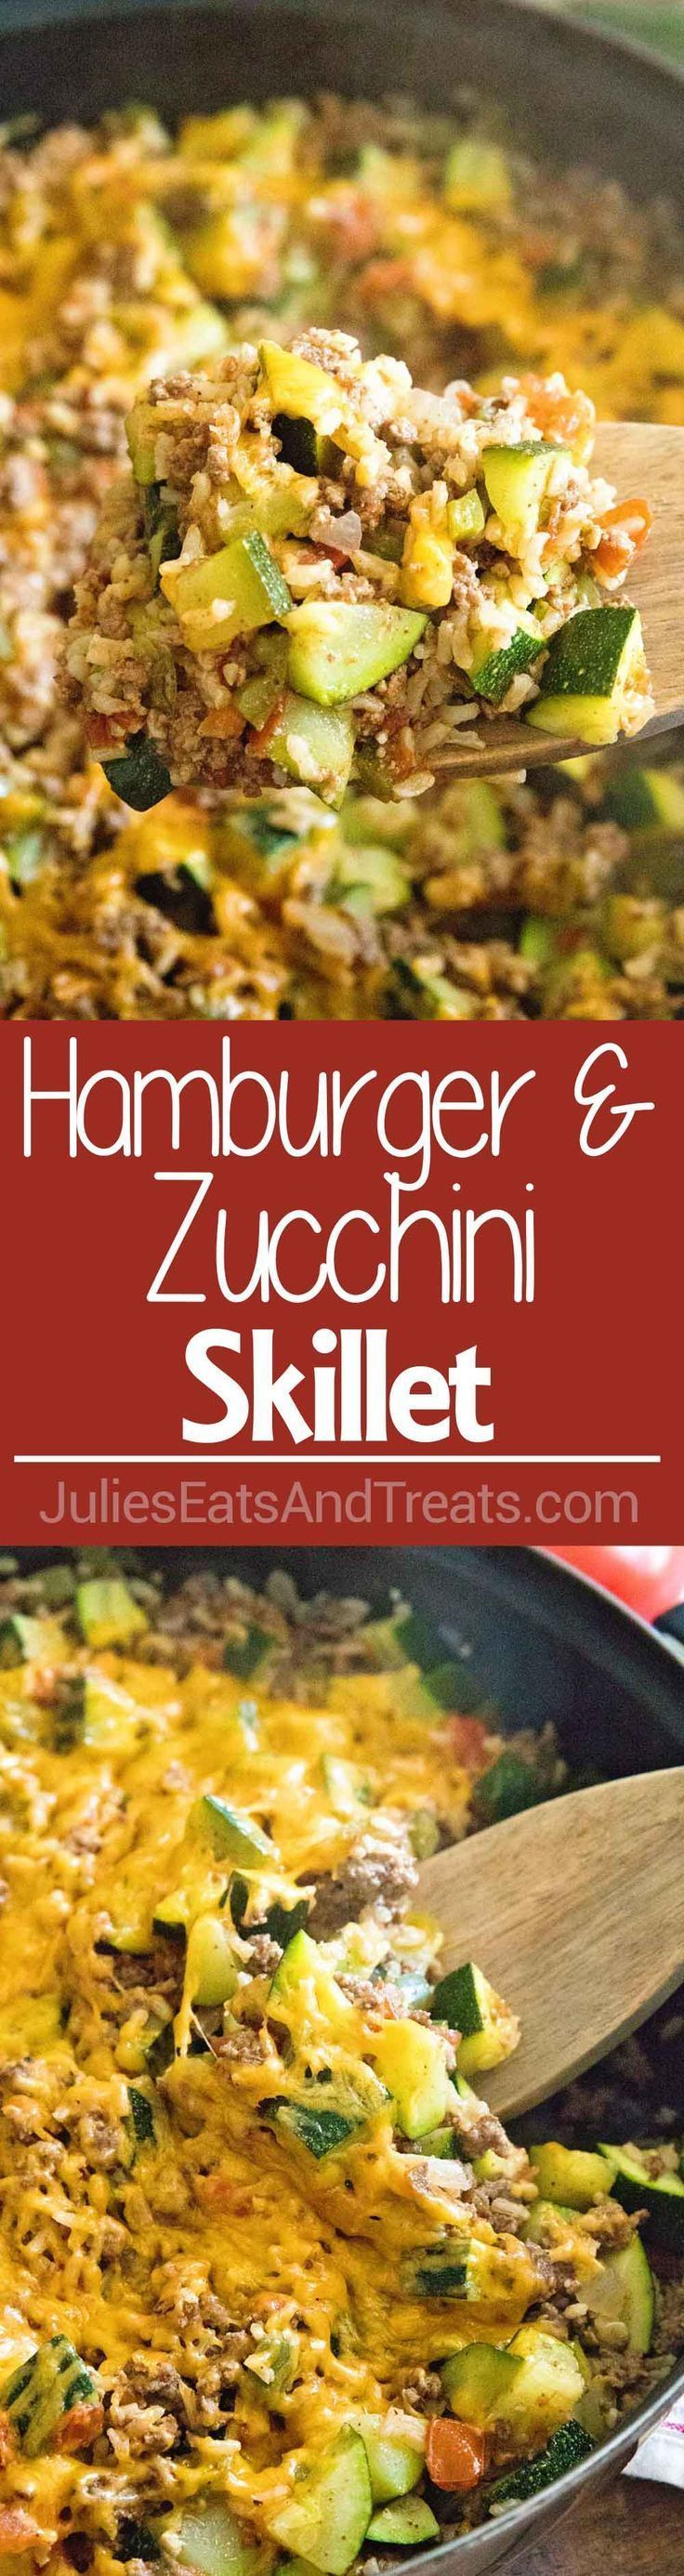 Hamburger and Zucchini Skillet ~ Delicious One Pan Dinner That is Light & Healthy! Loaded with Zucchini, Hamburger, Brown Rice, Green Pepper, and Tomatoes! On the Table in 30 Minutes!